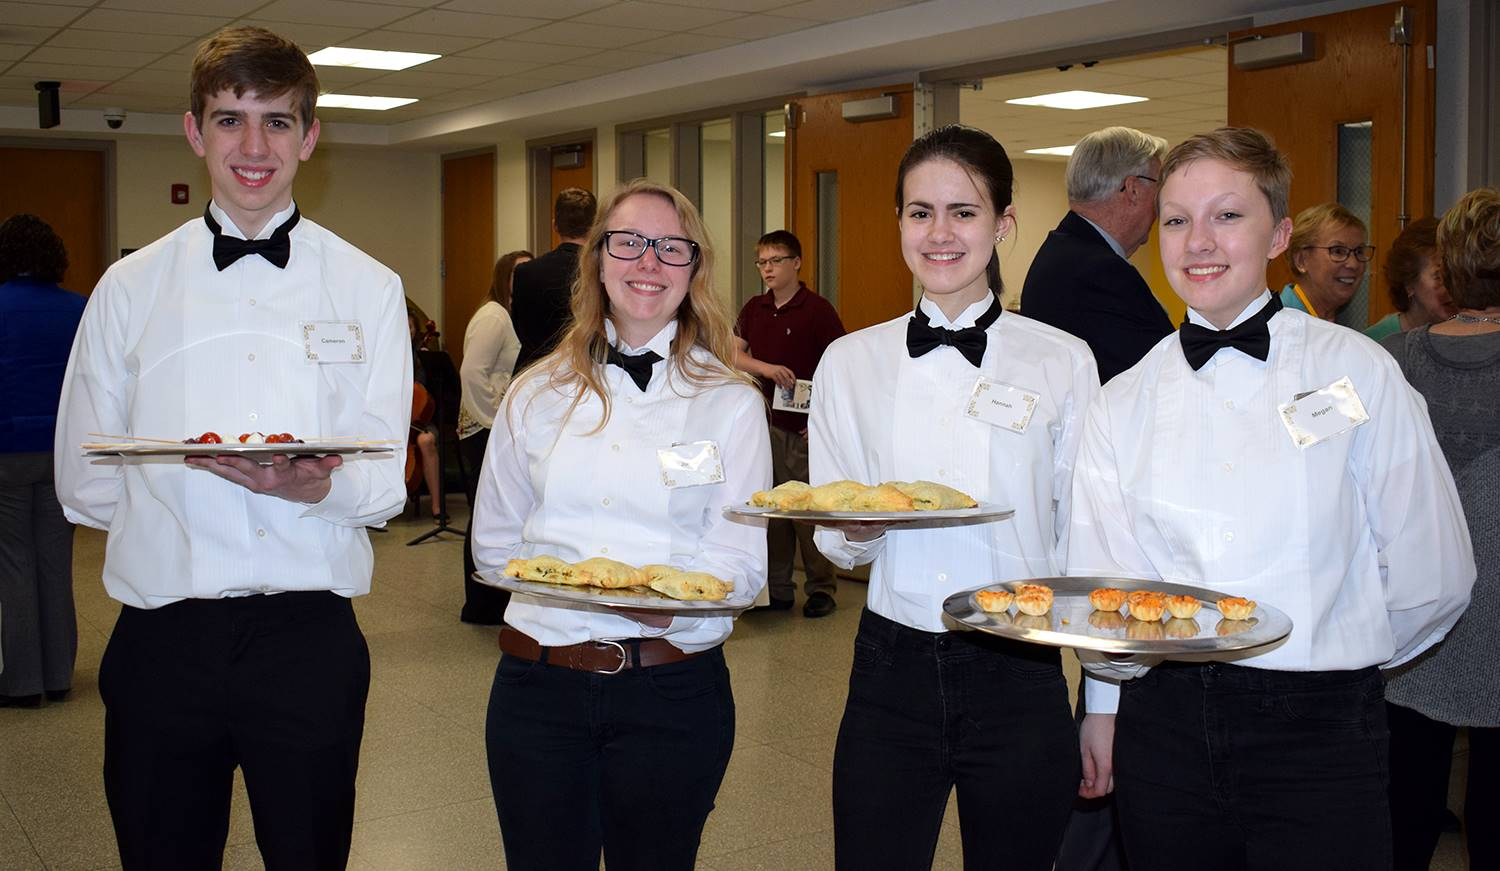 Dressed in white shirts with black bow ties and black slacks, sudent waitstaff cheerfully offer appe